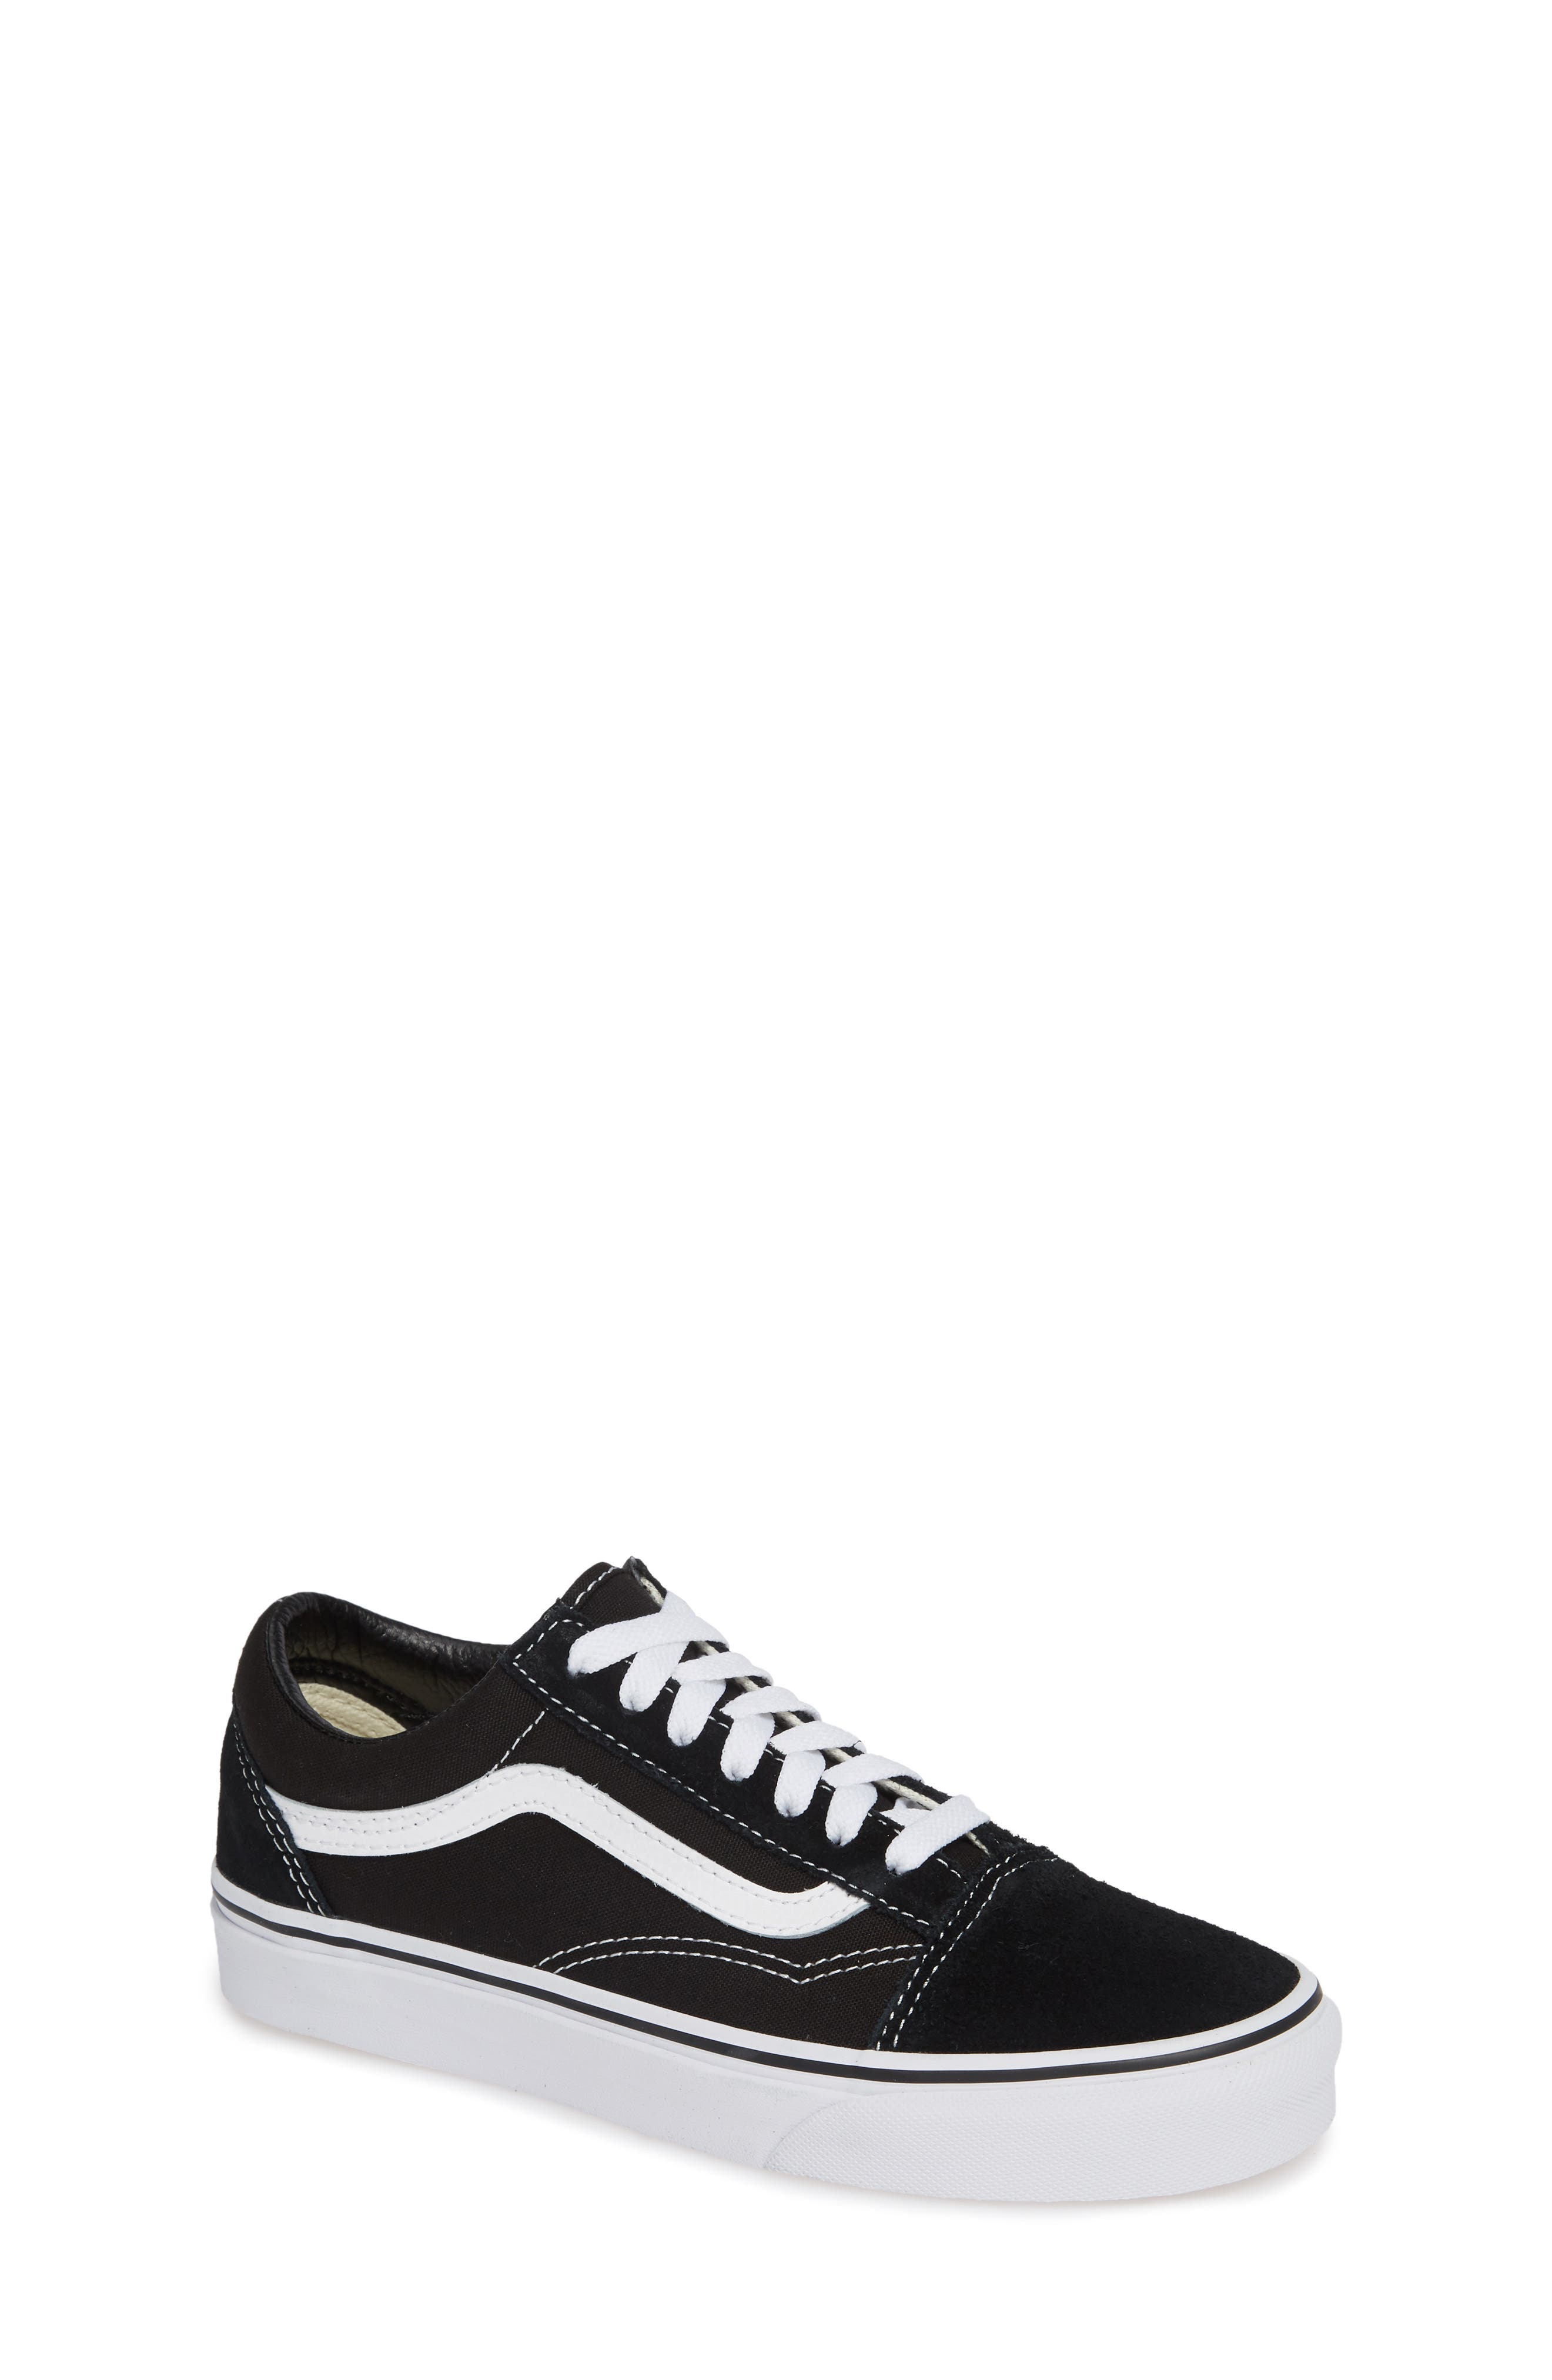 VANS, 'Old Skool' Skate Sneaker, Main thumbnail 1, color, BLACK/ WHITE SUEDE CANVAS